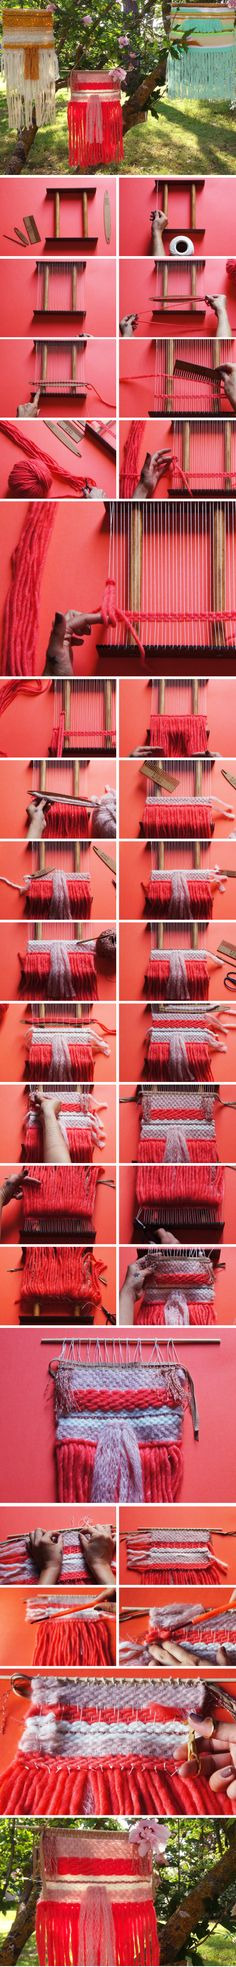 DIY WEAVING tutoriel for beginners stepper and technical weaving kit and accesso… - Weaving ideas Weaving Textiles, Weaving Art, Tapestry Weaving, Loom Weaving, Hand Weaving, Classroom Art Projects, Weaving Projects, Arm Knitting, Weaving Techniques